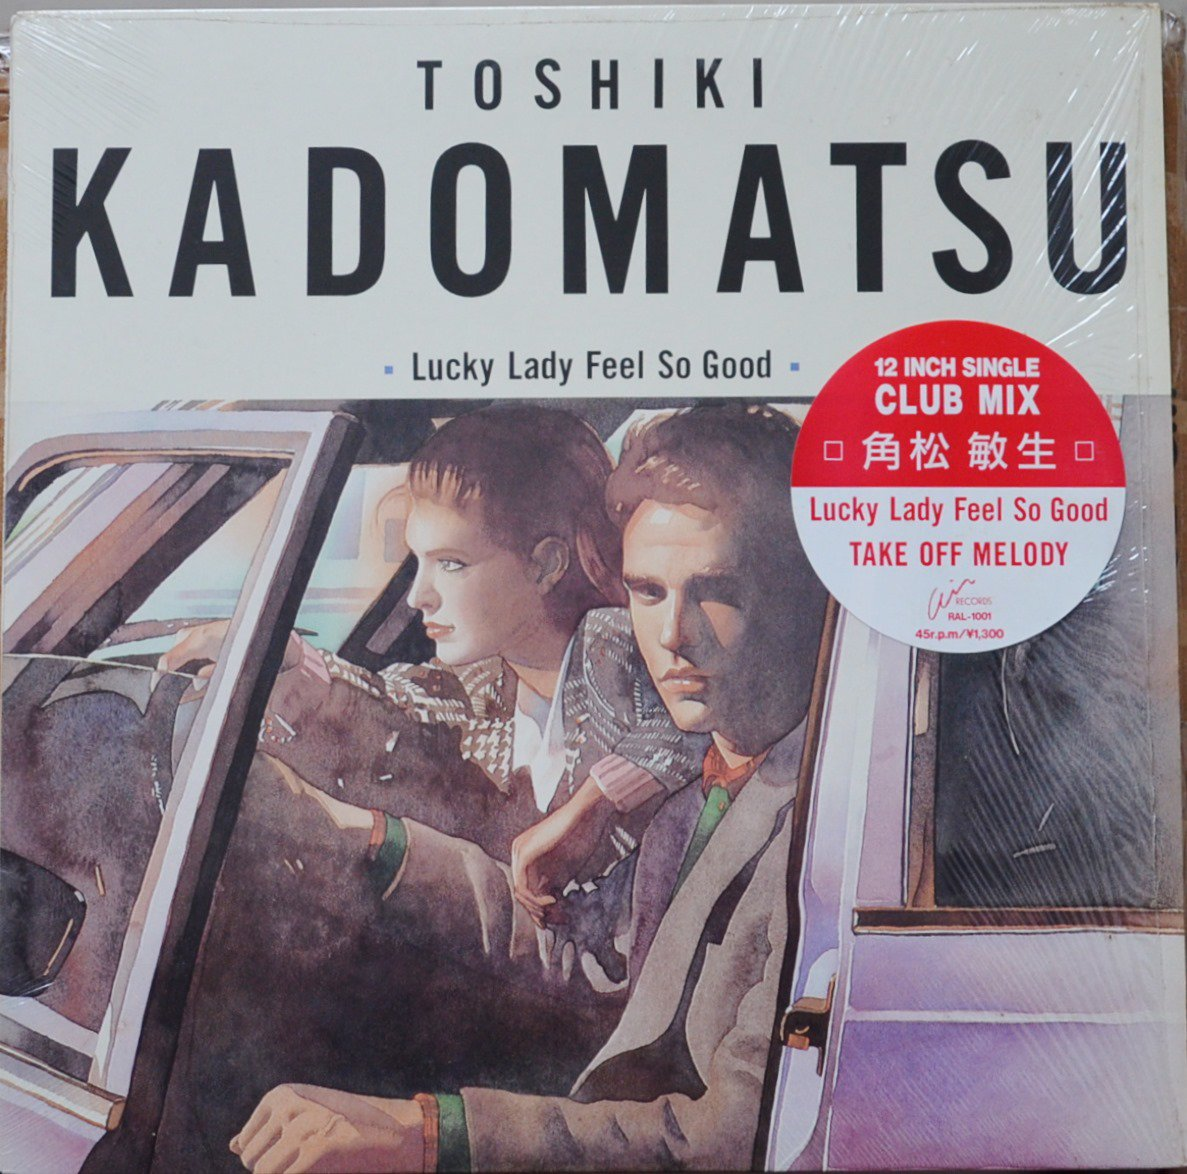 角松敏生 TOSHIKI KADOMATSU / LUCKY LADY FEEL SO GOOD (12